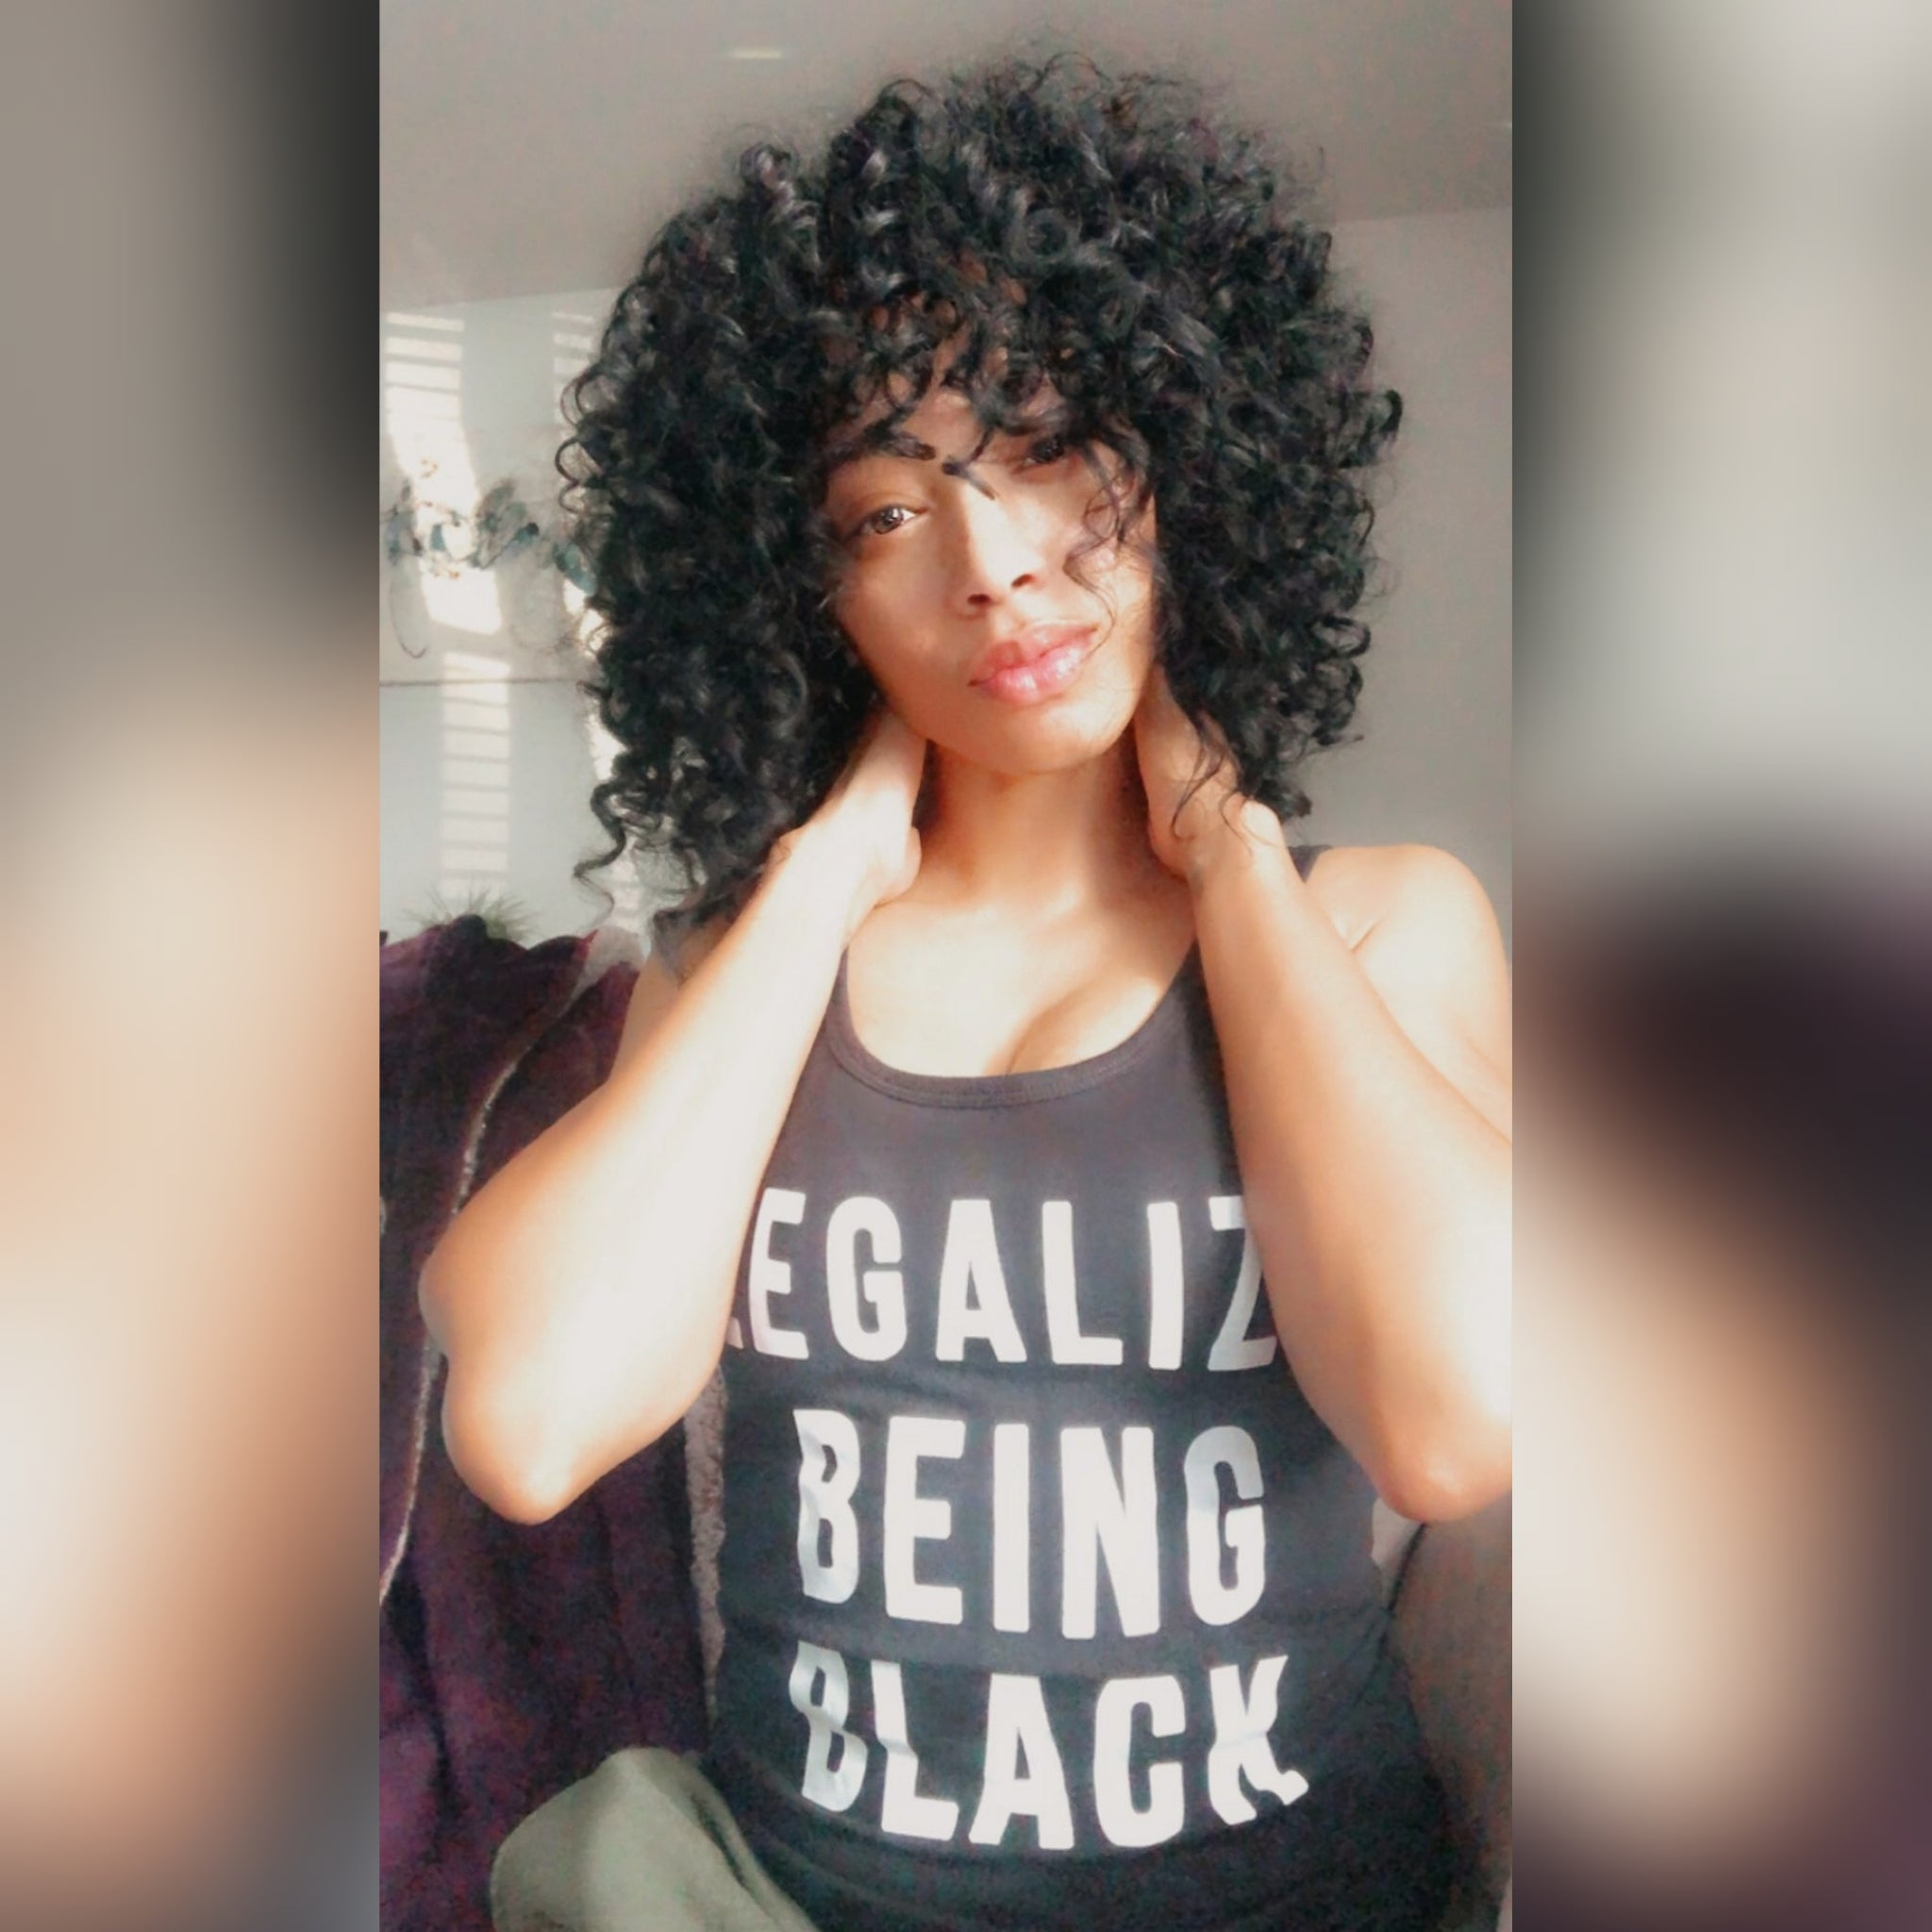 Legalize Being Black Tank Top